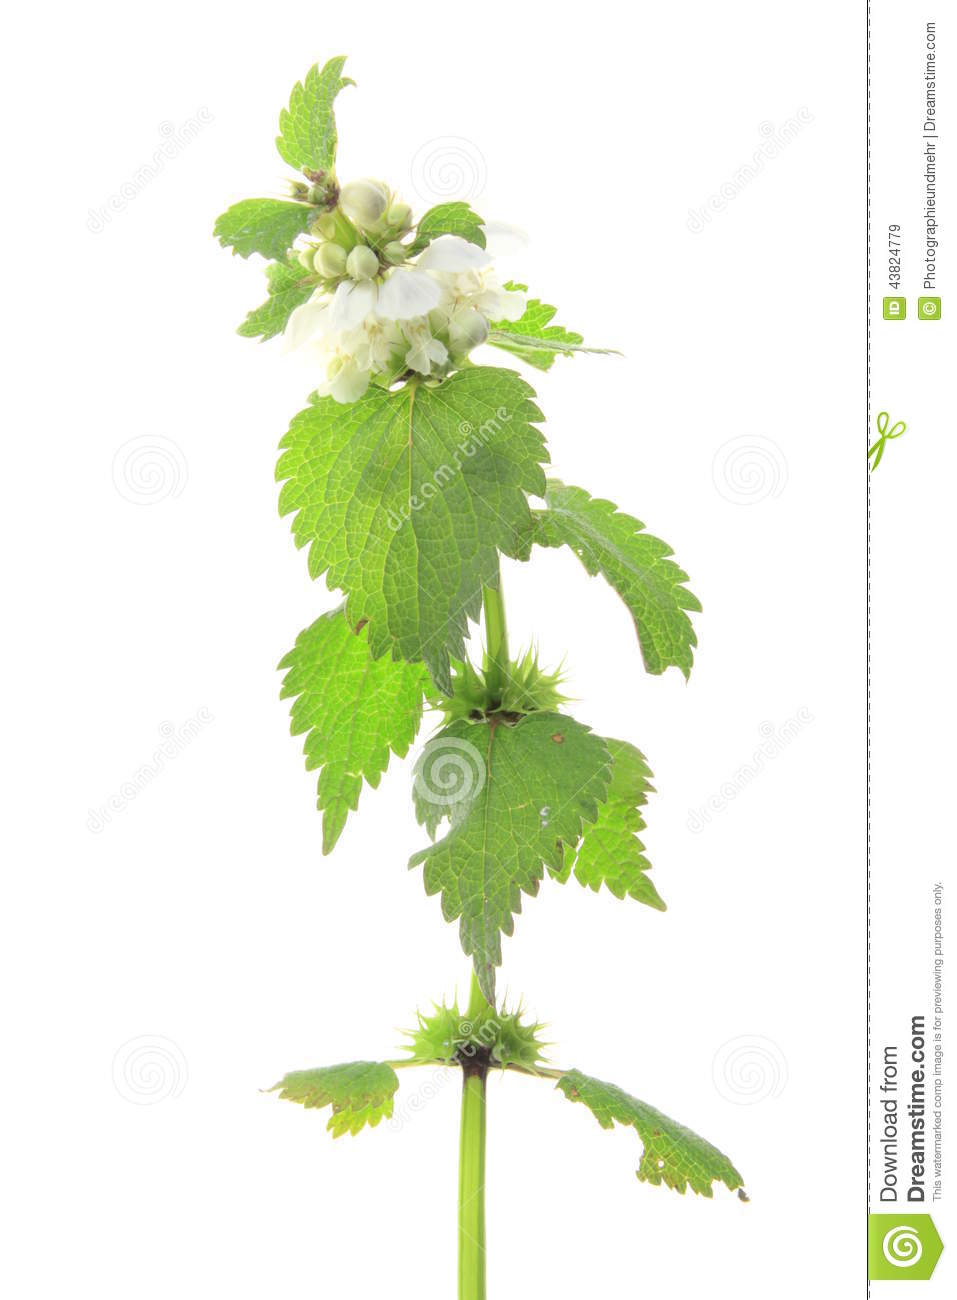 White Dead Nettle (Lamium Album) Stock Photo.